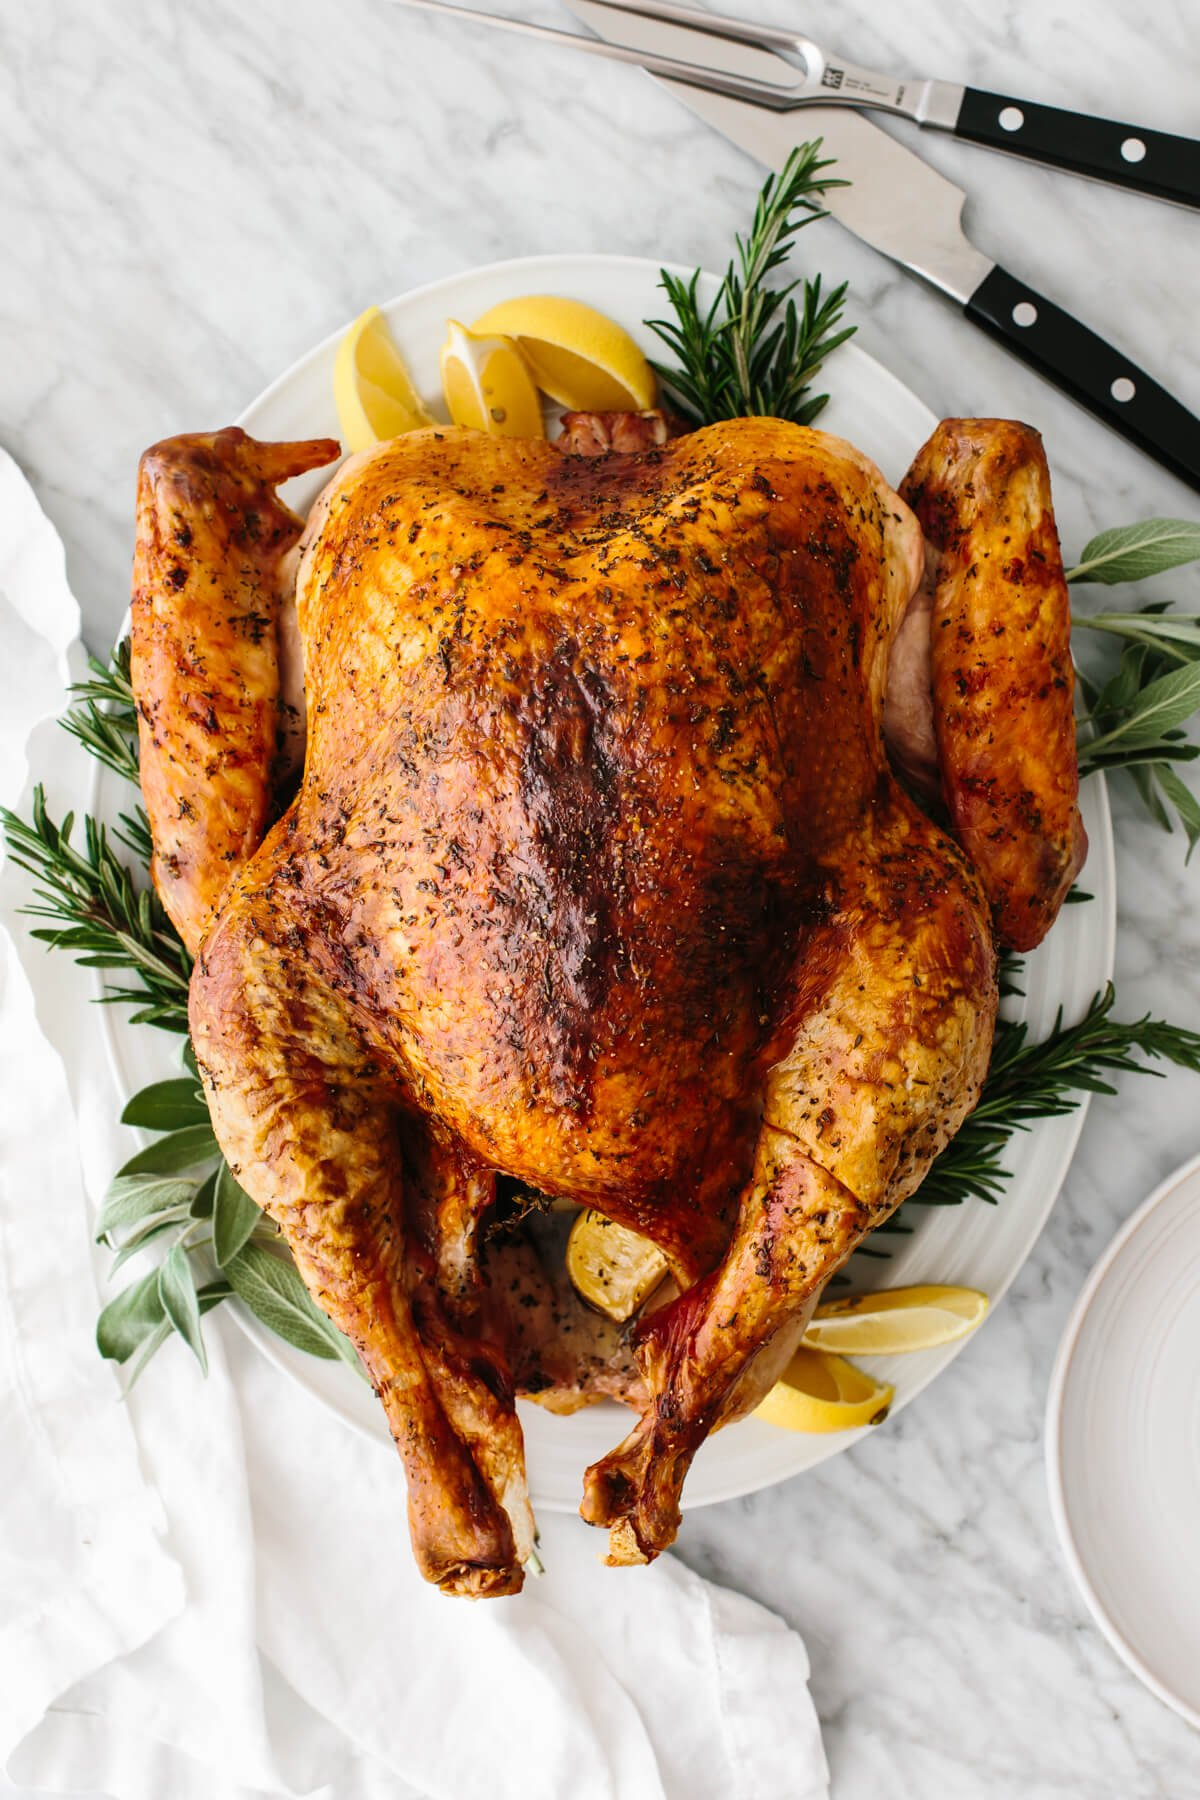 Roasted Thanksgiving turkey on a plate.